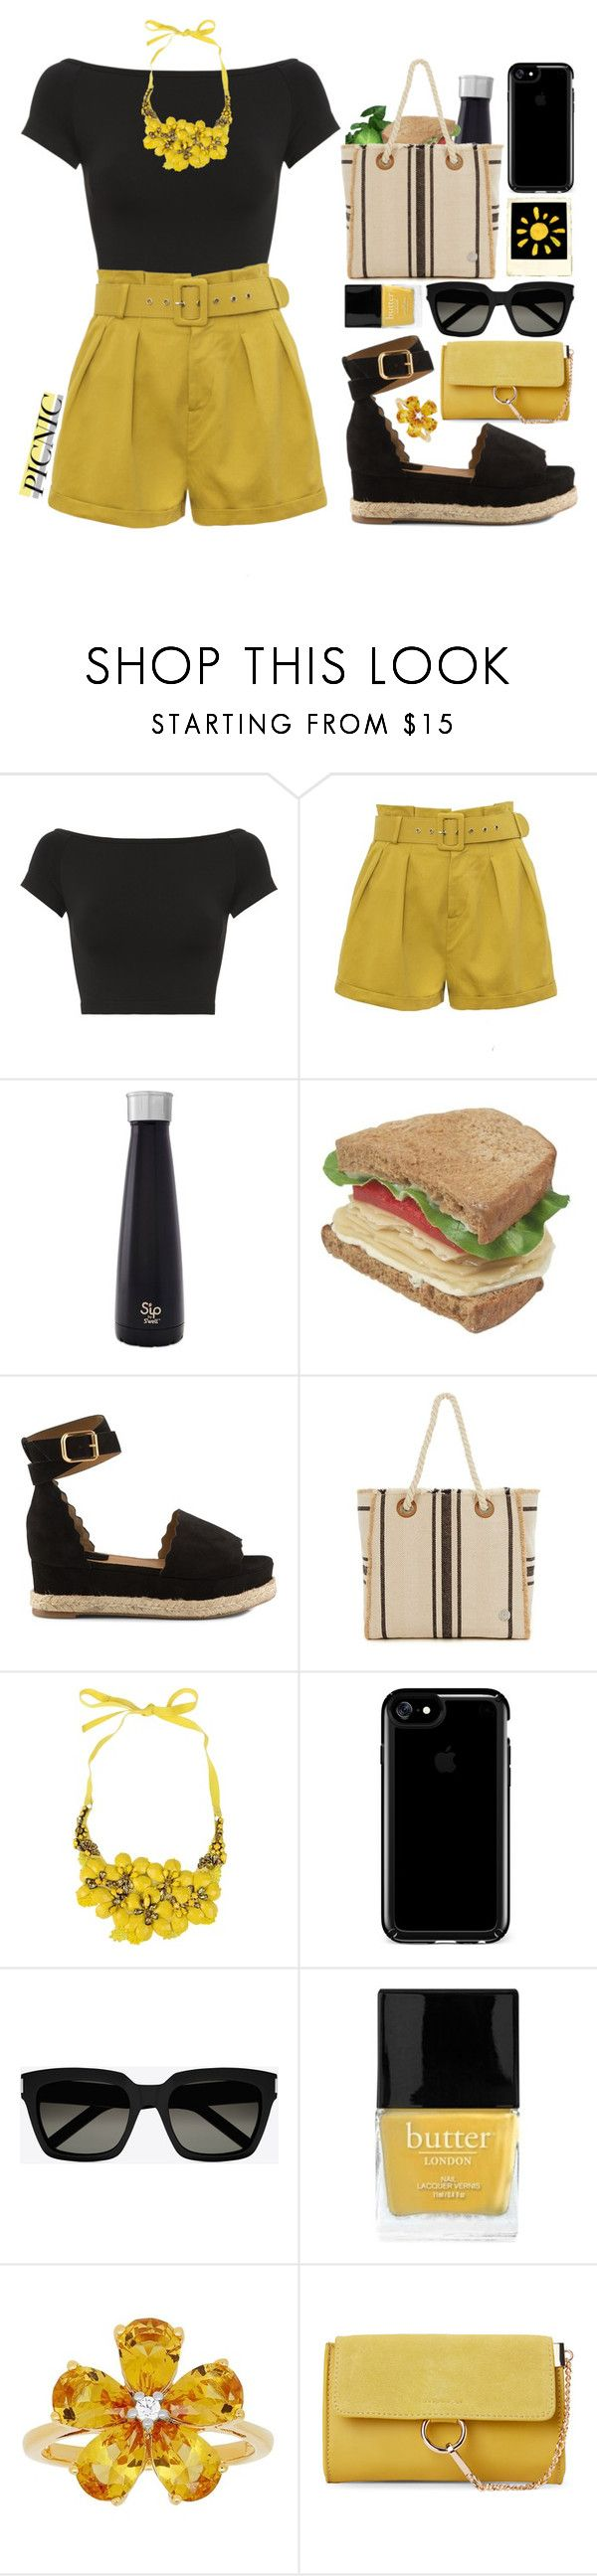 """""""Summer Picnic"""" by xxfashiongirl12xx ❤ liked on Polyvore featuring Helmut Lang, S'well, Chloé, Vince Camuto, Alberta Ferretti, Speck, Yves Saint Laurent, Polaroid, Butter London and David Tutera"""